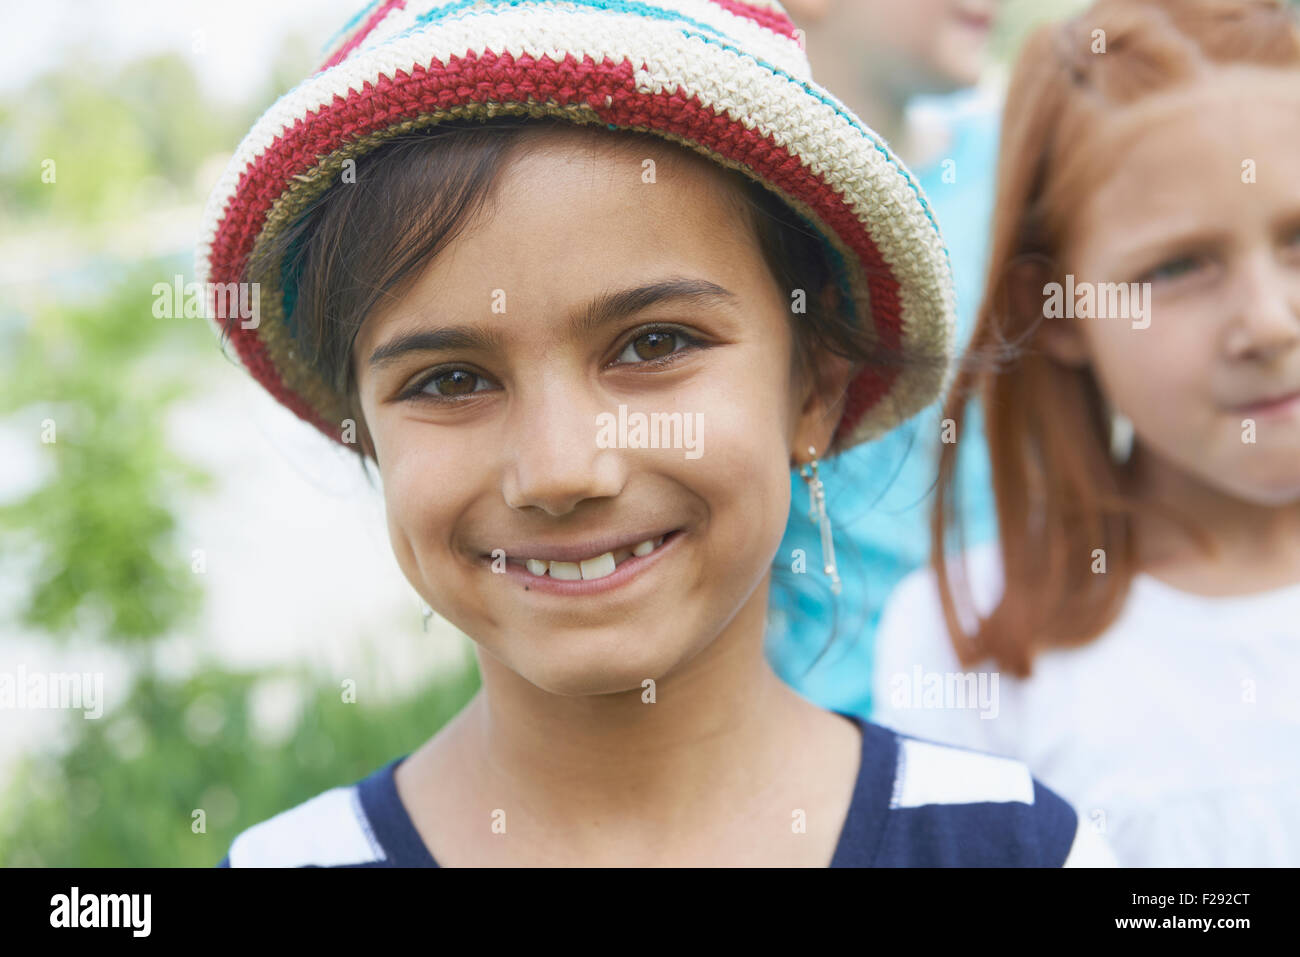 Portrait of a girl smiling, Bavaria, Germany - Stock Image